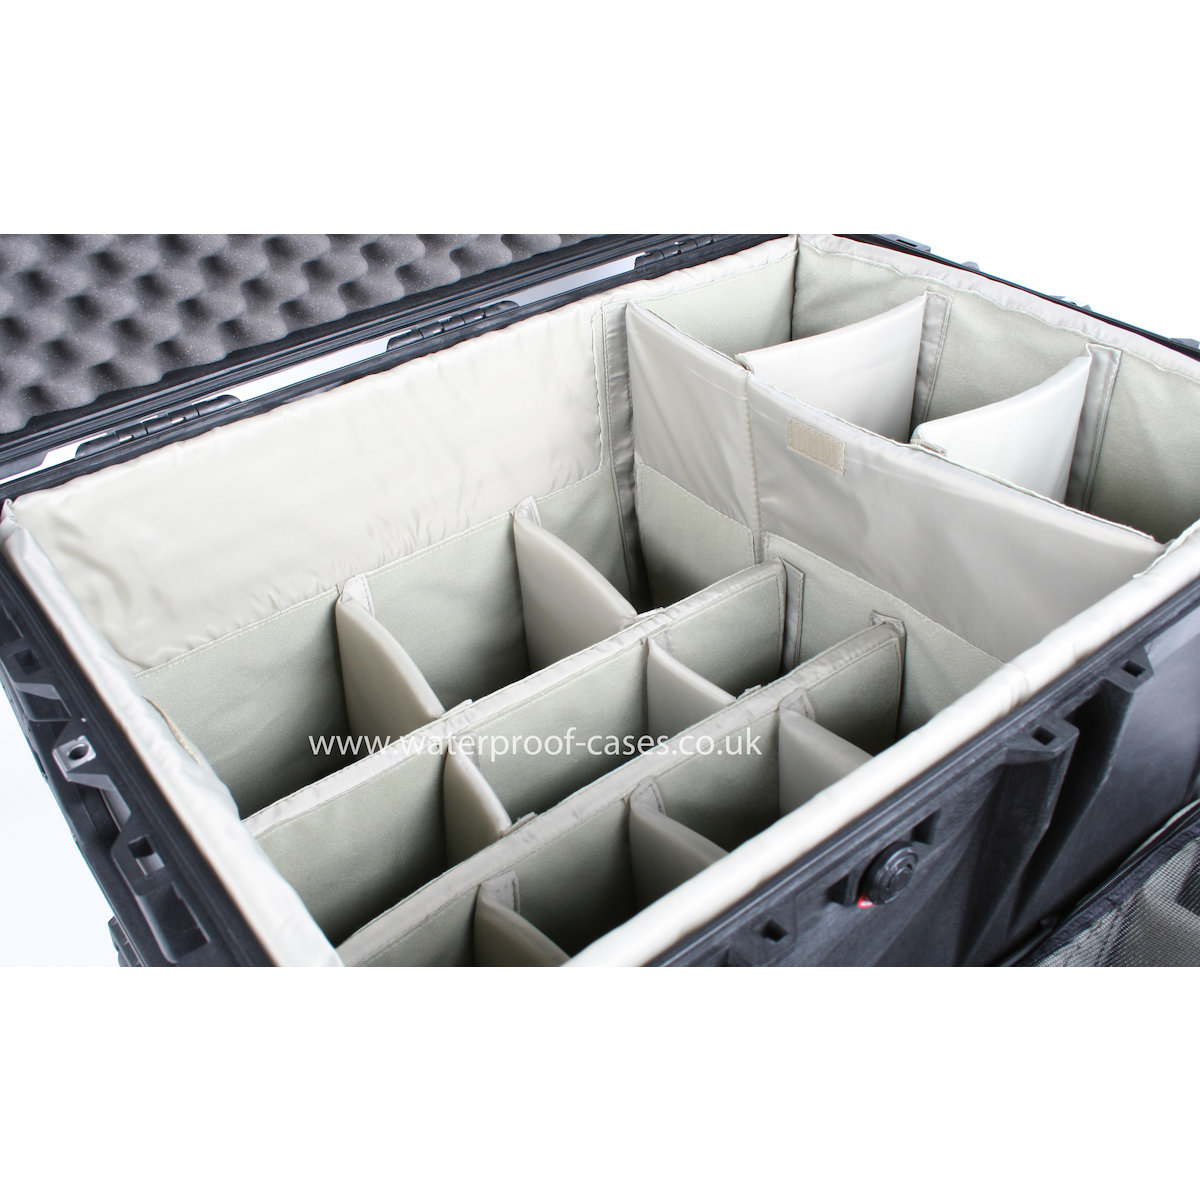 Peli Padded dividers for Peli 1660 Call 01902 764000 For Best Prices